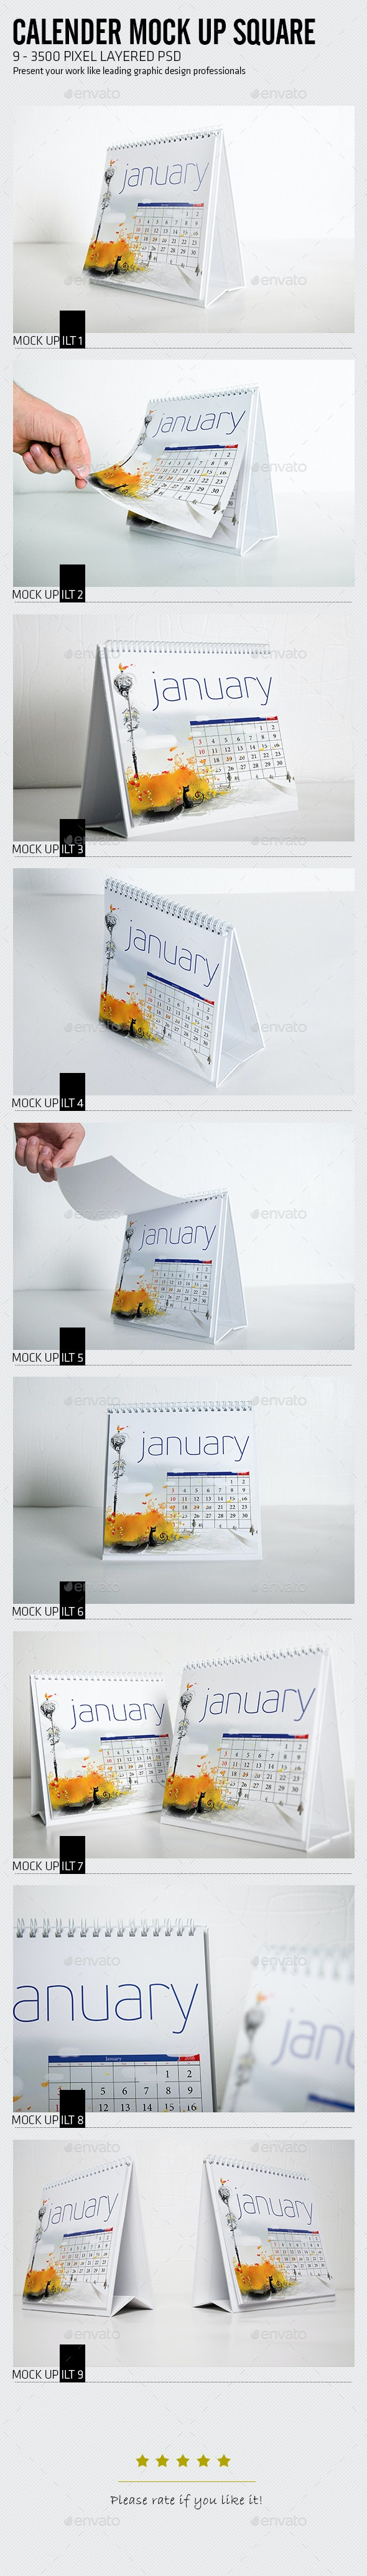 Calender Mock Up Square - Miscellaneous Print